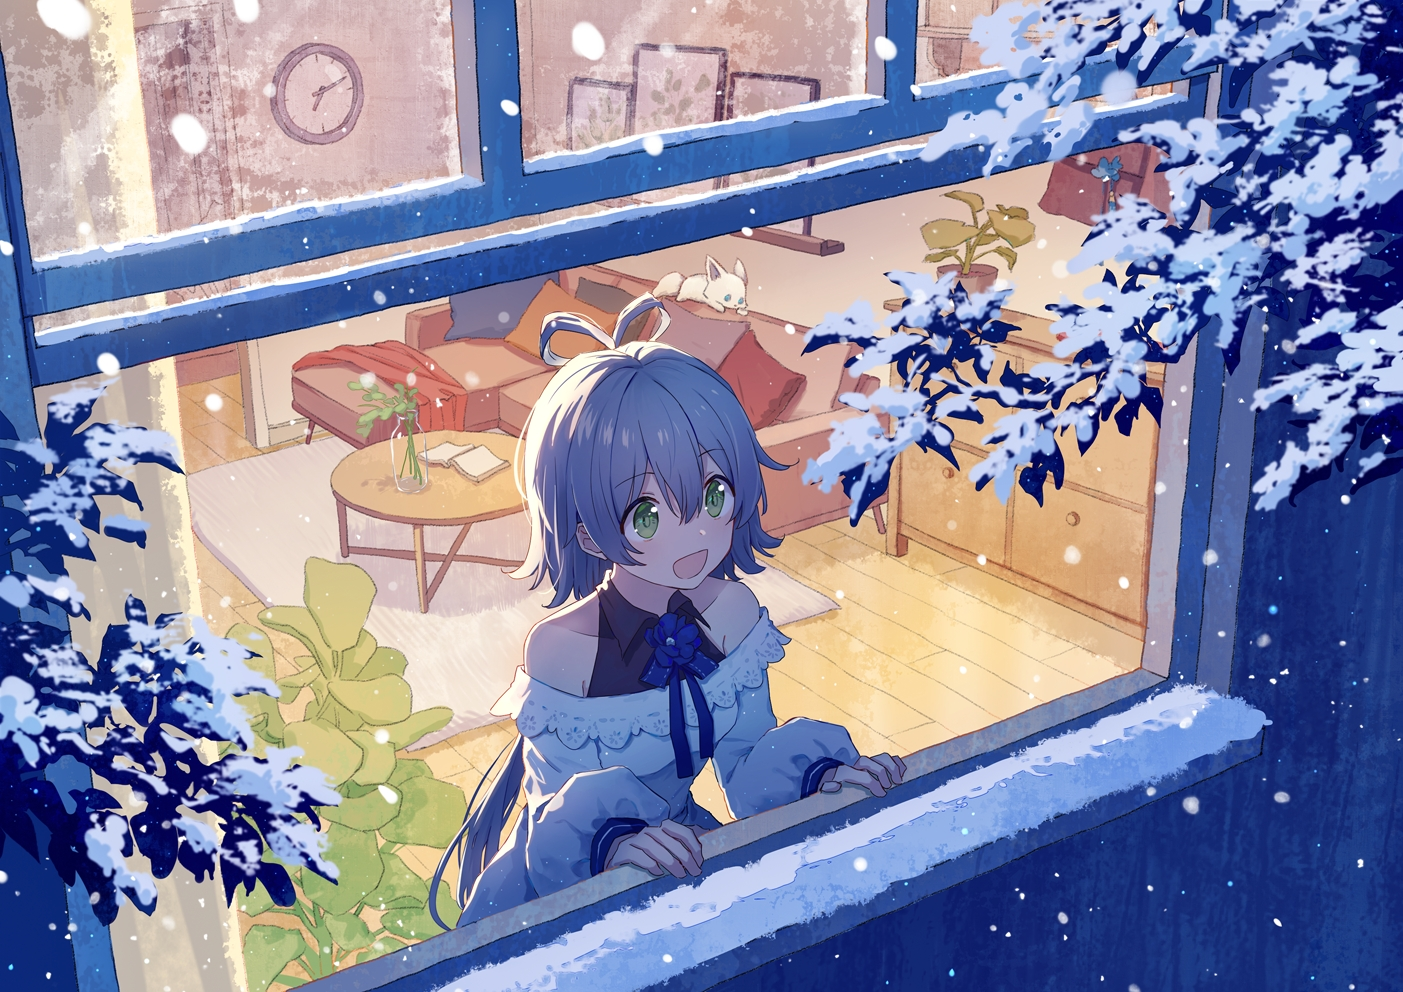 animal book couch fox gray_hair green_eyes long_hair luo_tianyi mimengfeixue ponytail snow vocaloid vsinger winter